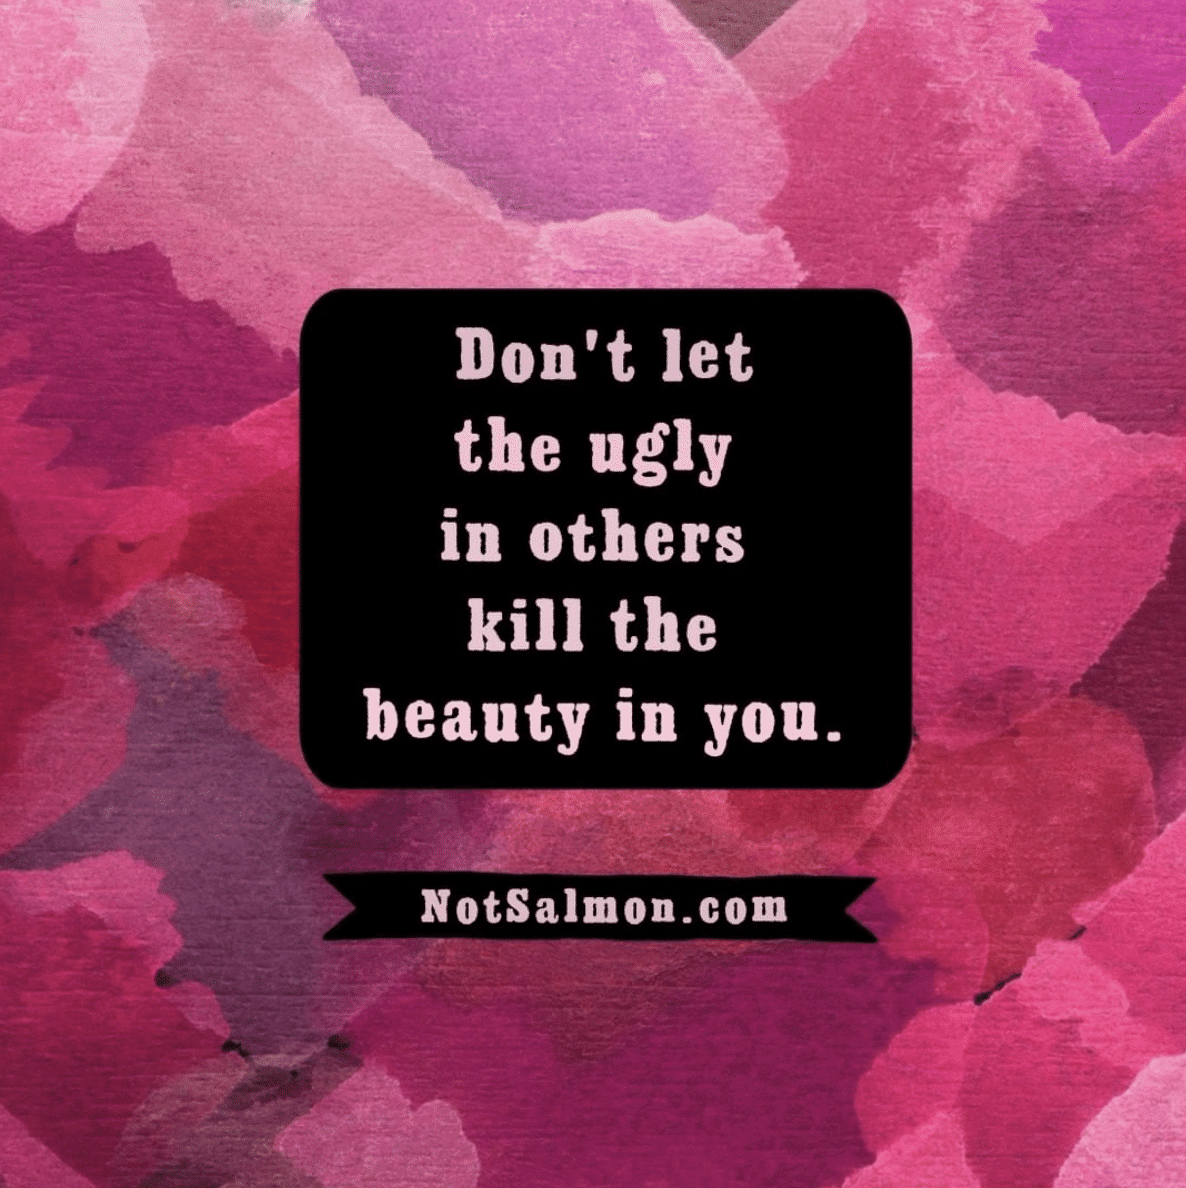 quote don't let the ugly in others kill the beauty in you